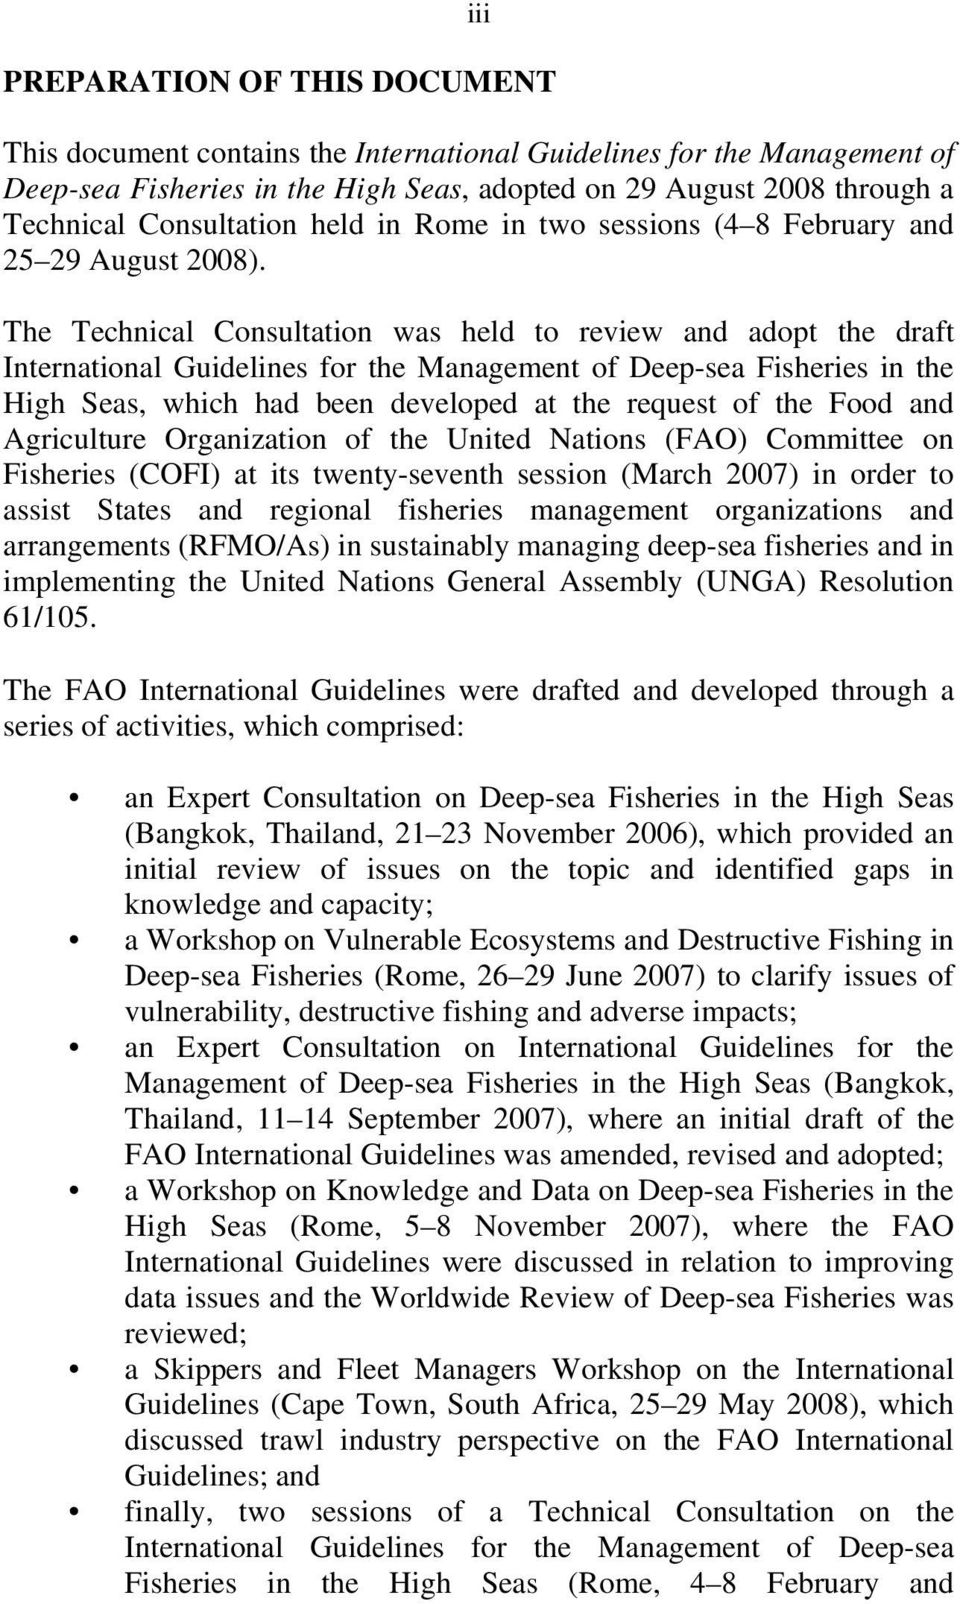 The Technical Consultation was held to review and adopt the draft International Guidelines for the Management of Deep-sea Fisheries in the High Seas, which had been developed at the request of the